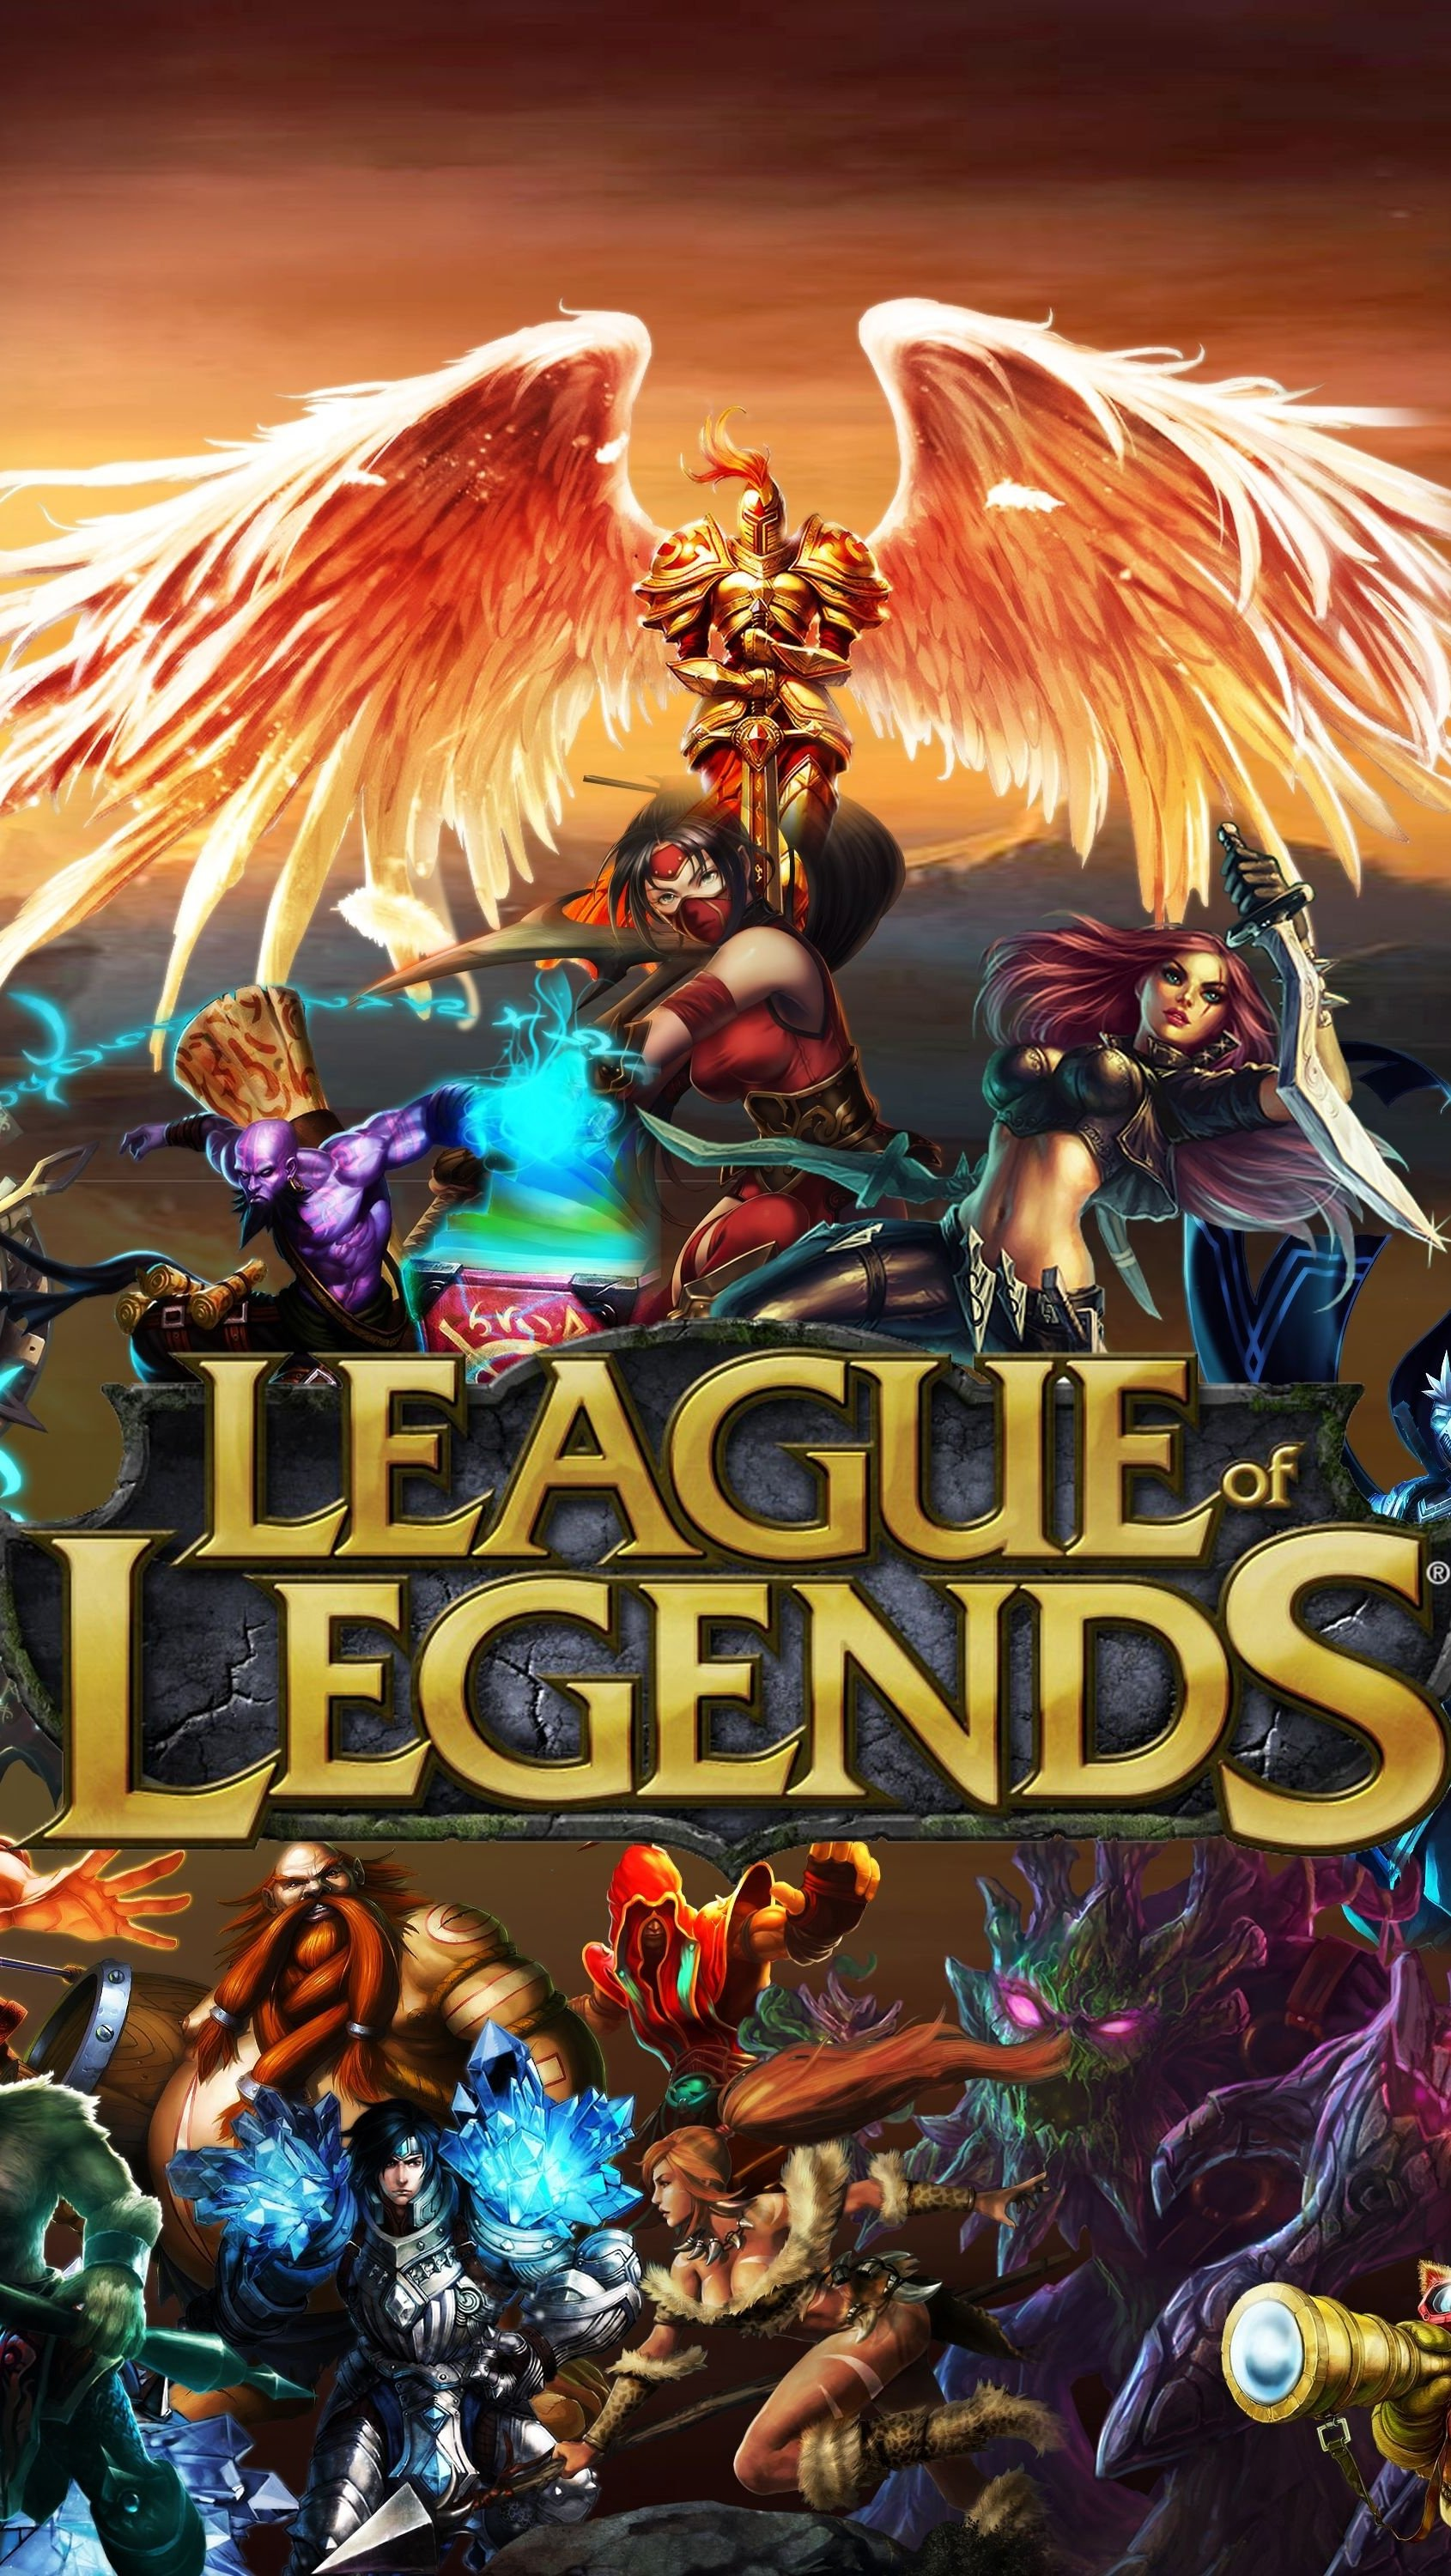 Fondos de pantalla League Of Legends Personajes Poster Vertical